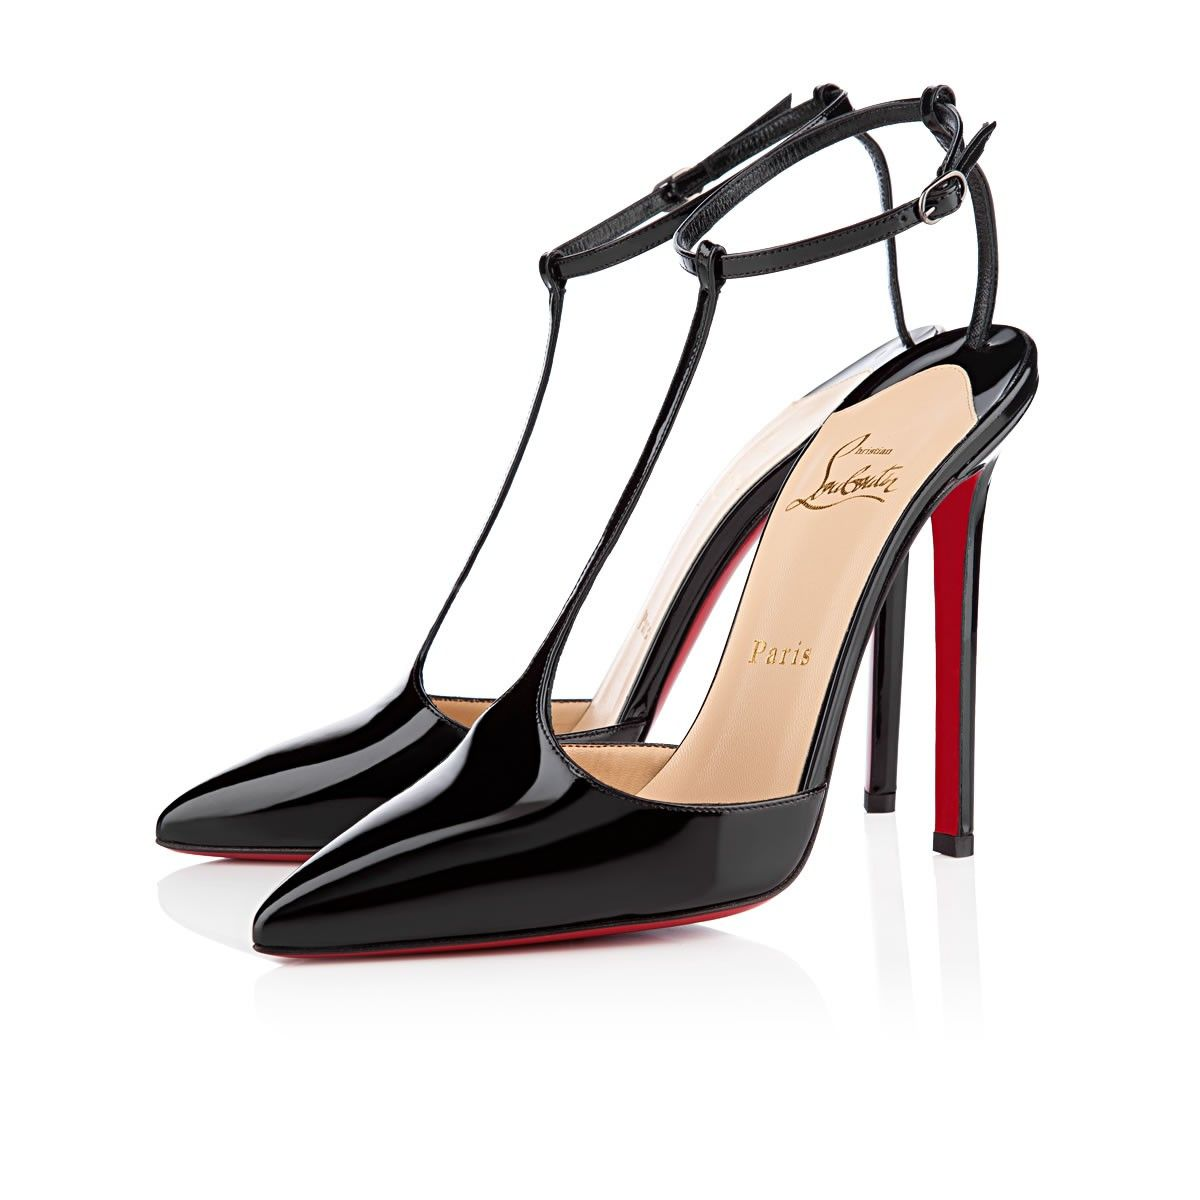 where can i buy christian louboutin shoes on sale, louboutin sandals 2012 cheap $210, Christian Louboutin T Piga Patent 120mm